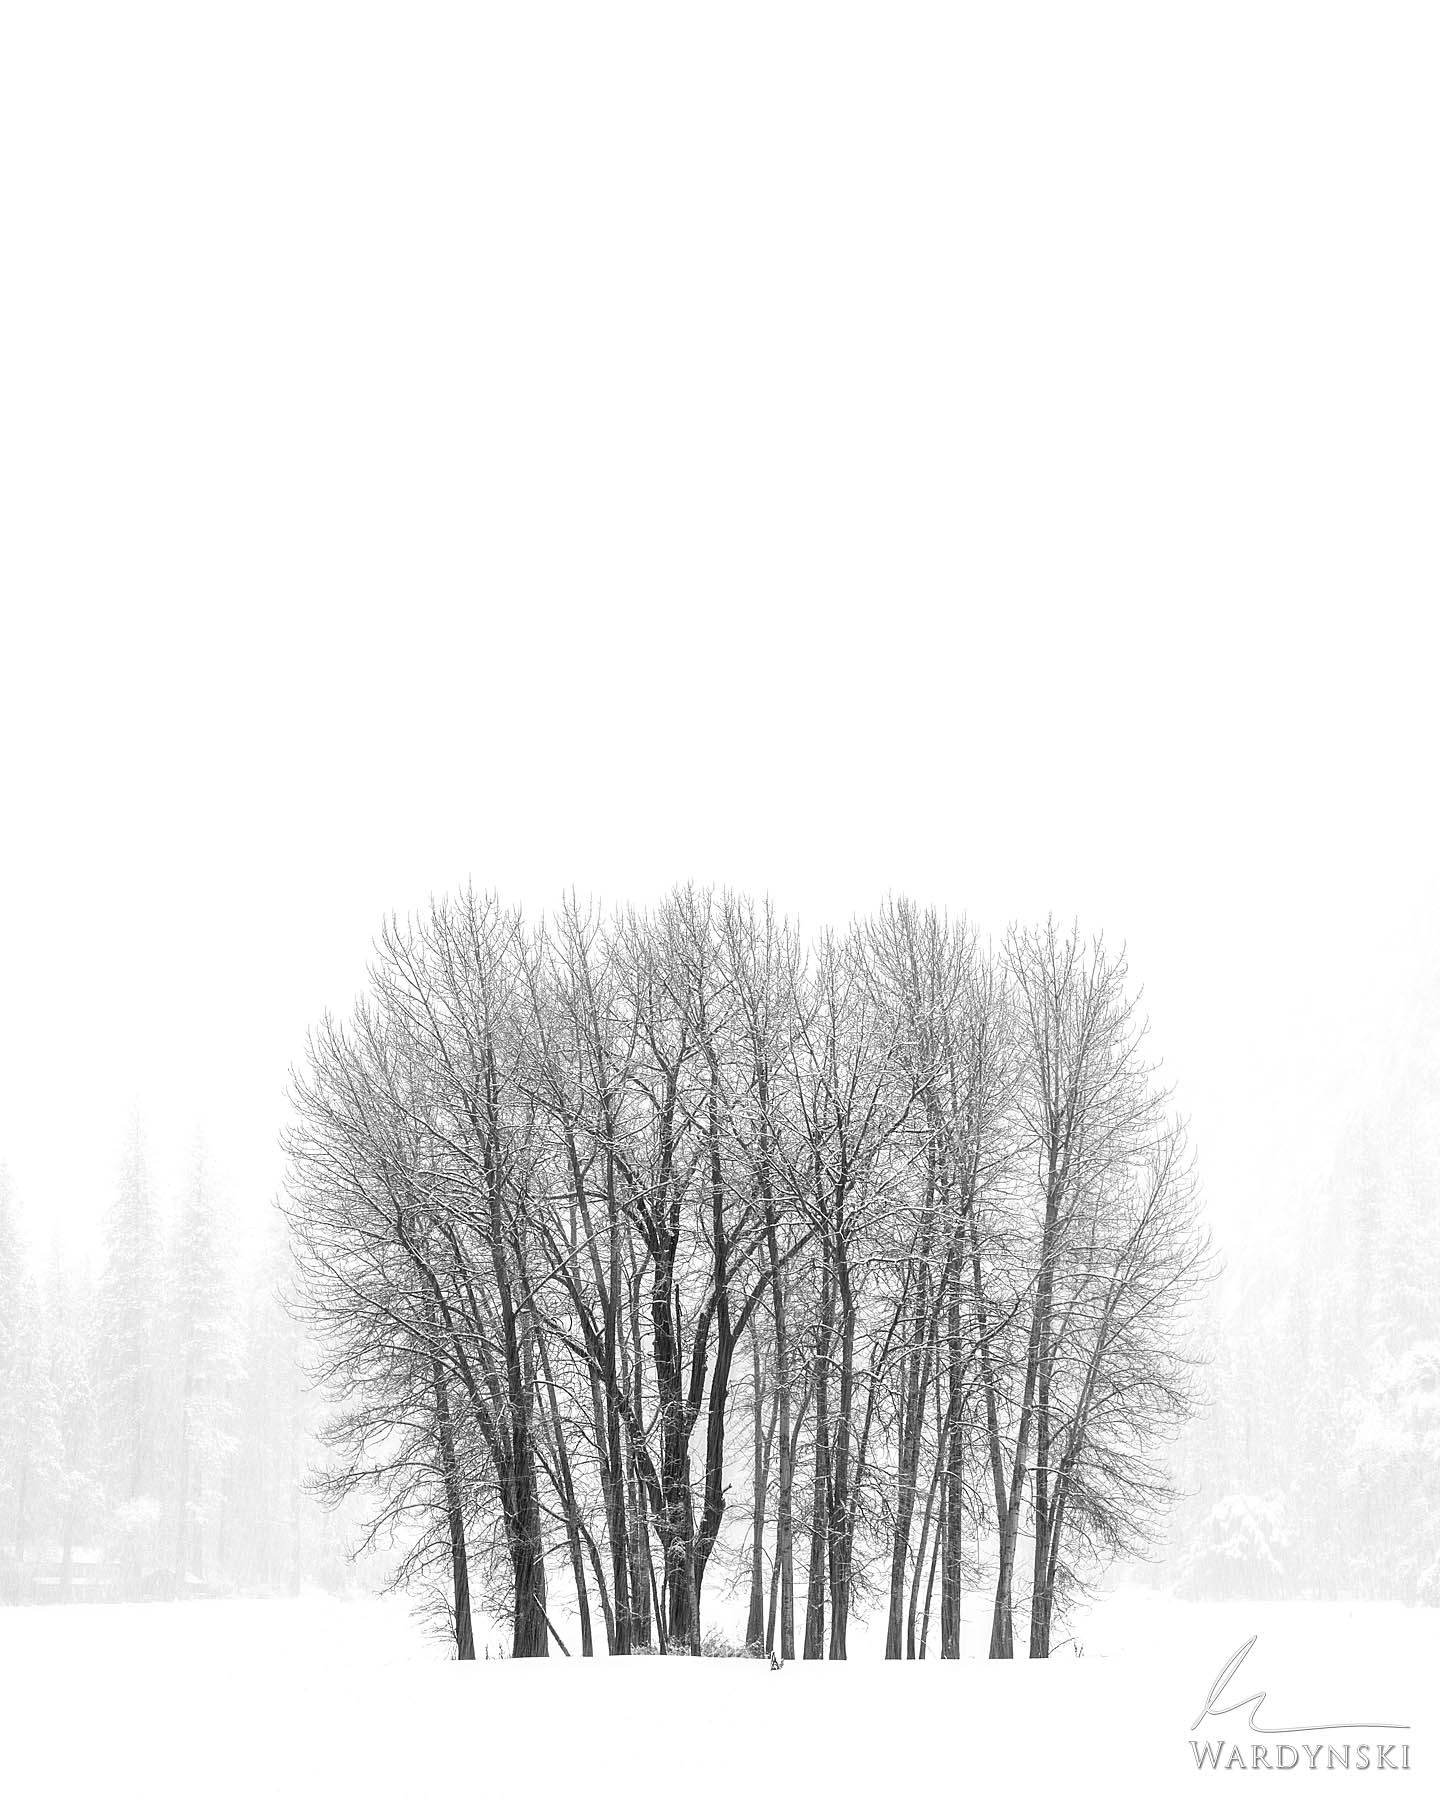 Fine Art Print | Limited Edition Print of 200  When fat fluffy snow flakes fall from the Yosemite sky I cannot help but smile...